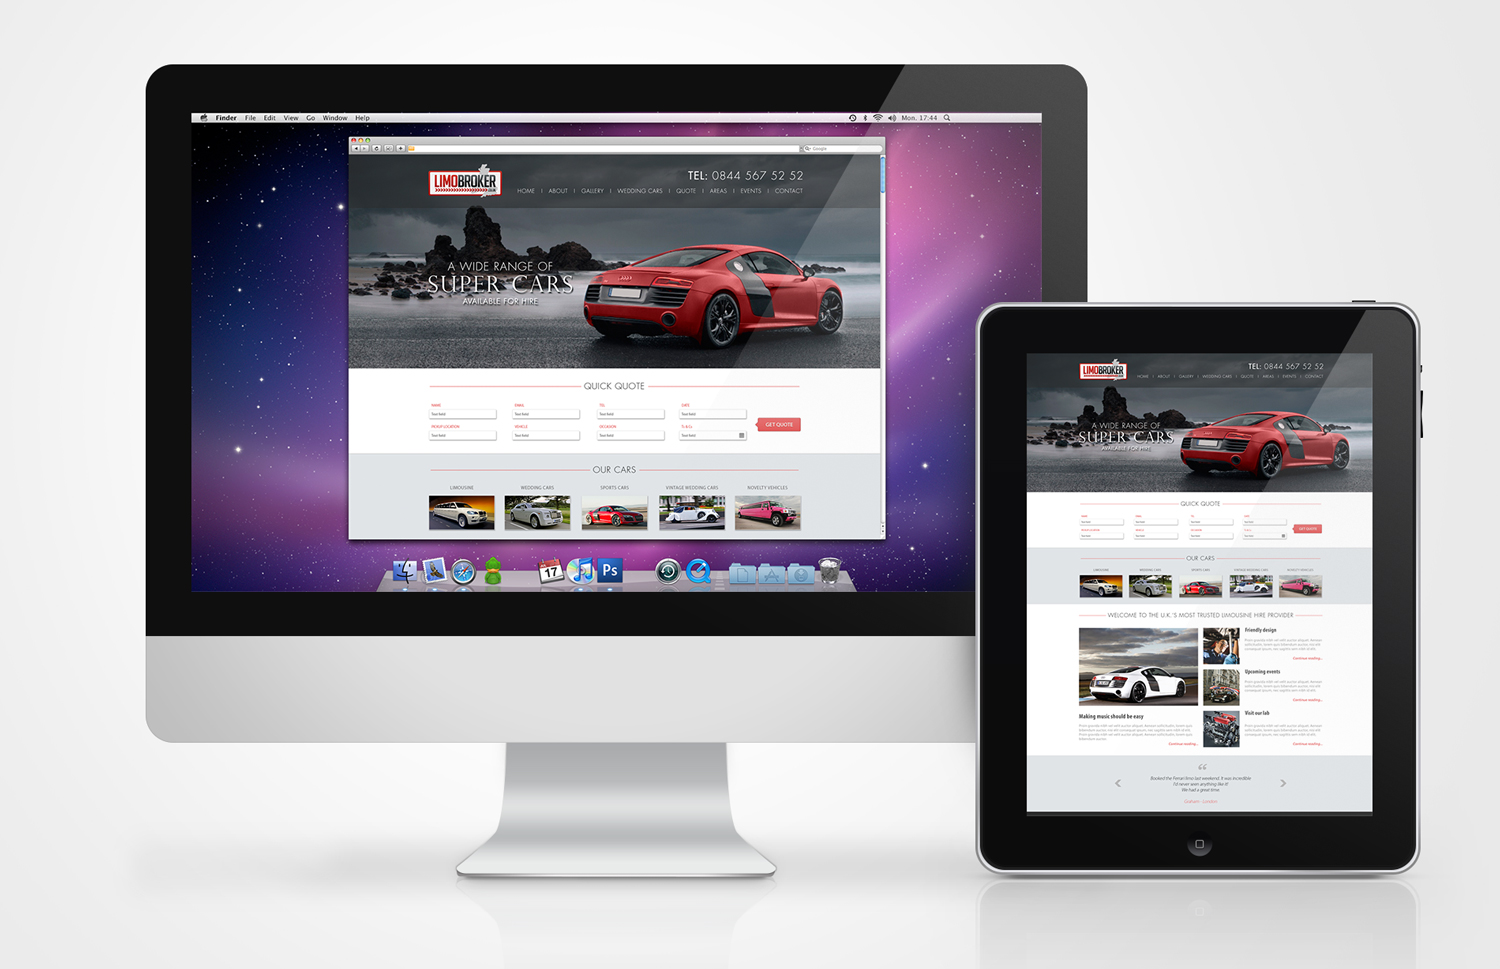 Limo Broker launches new and improved website